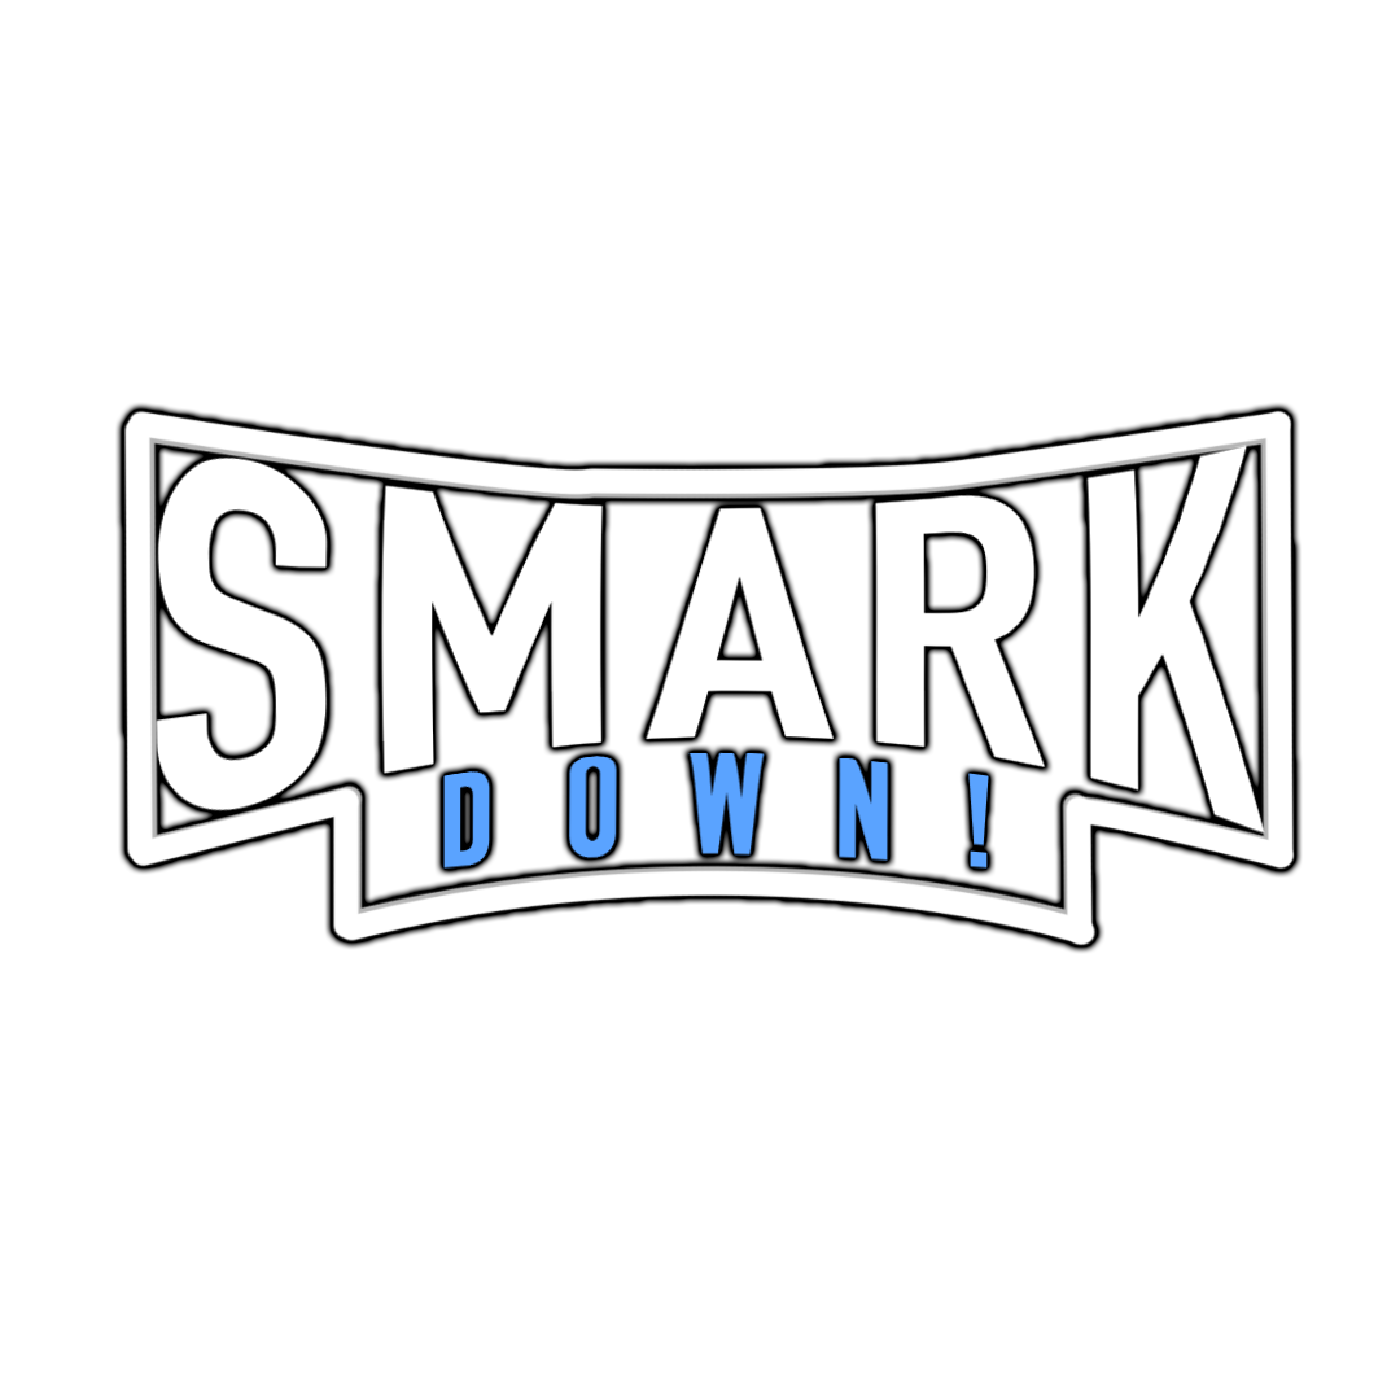 SmarkDown!